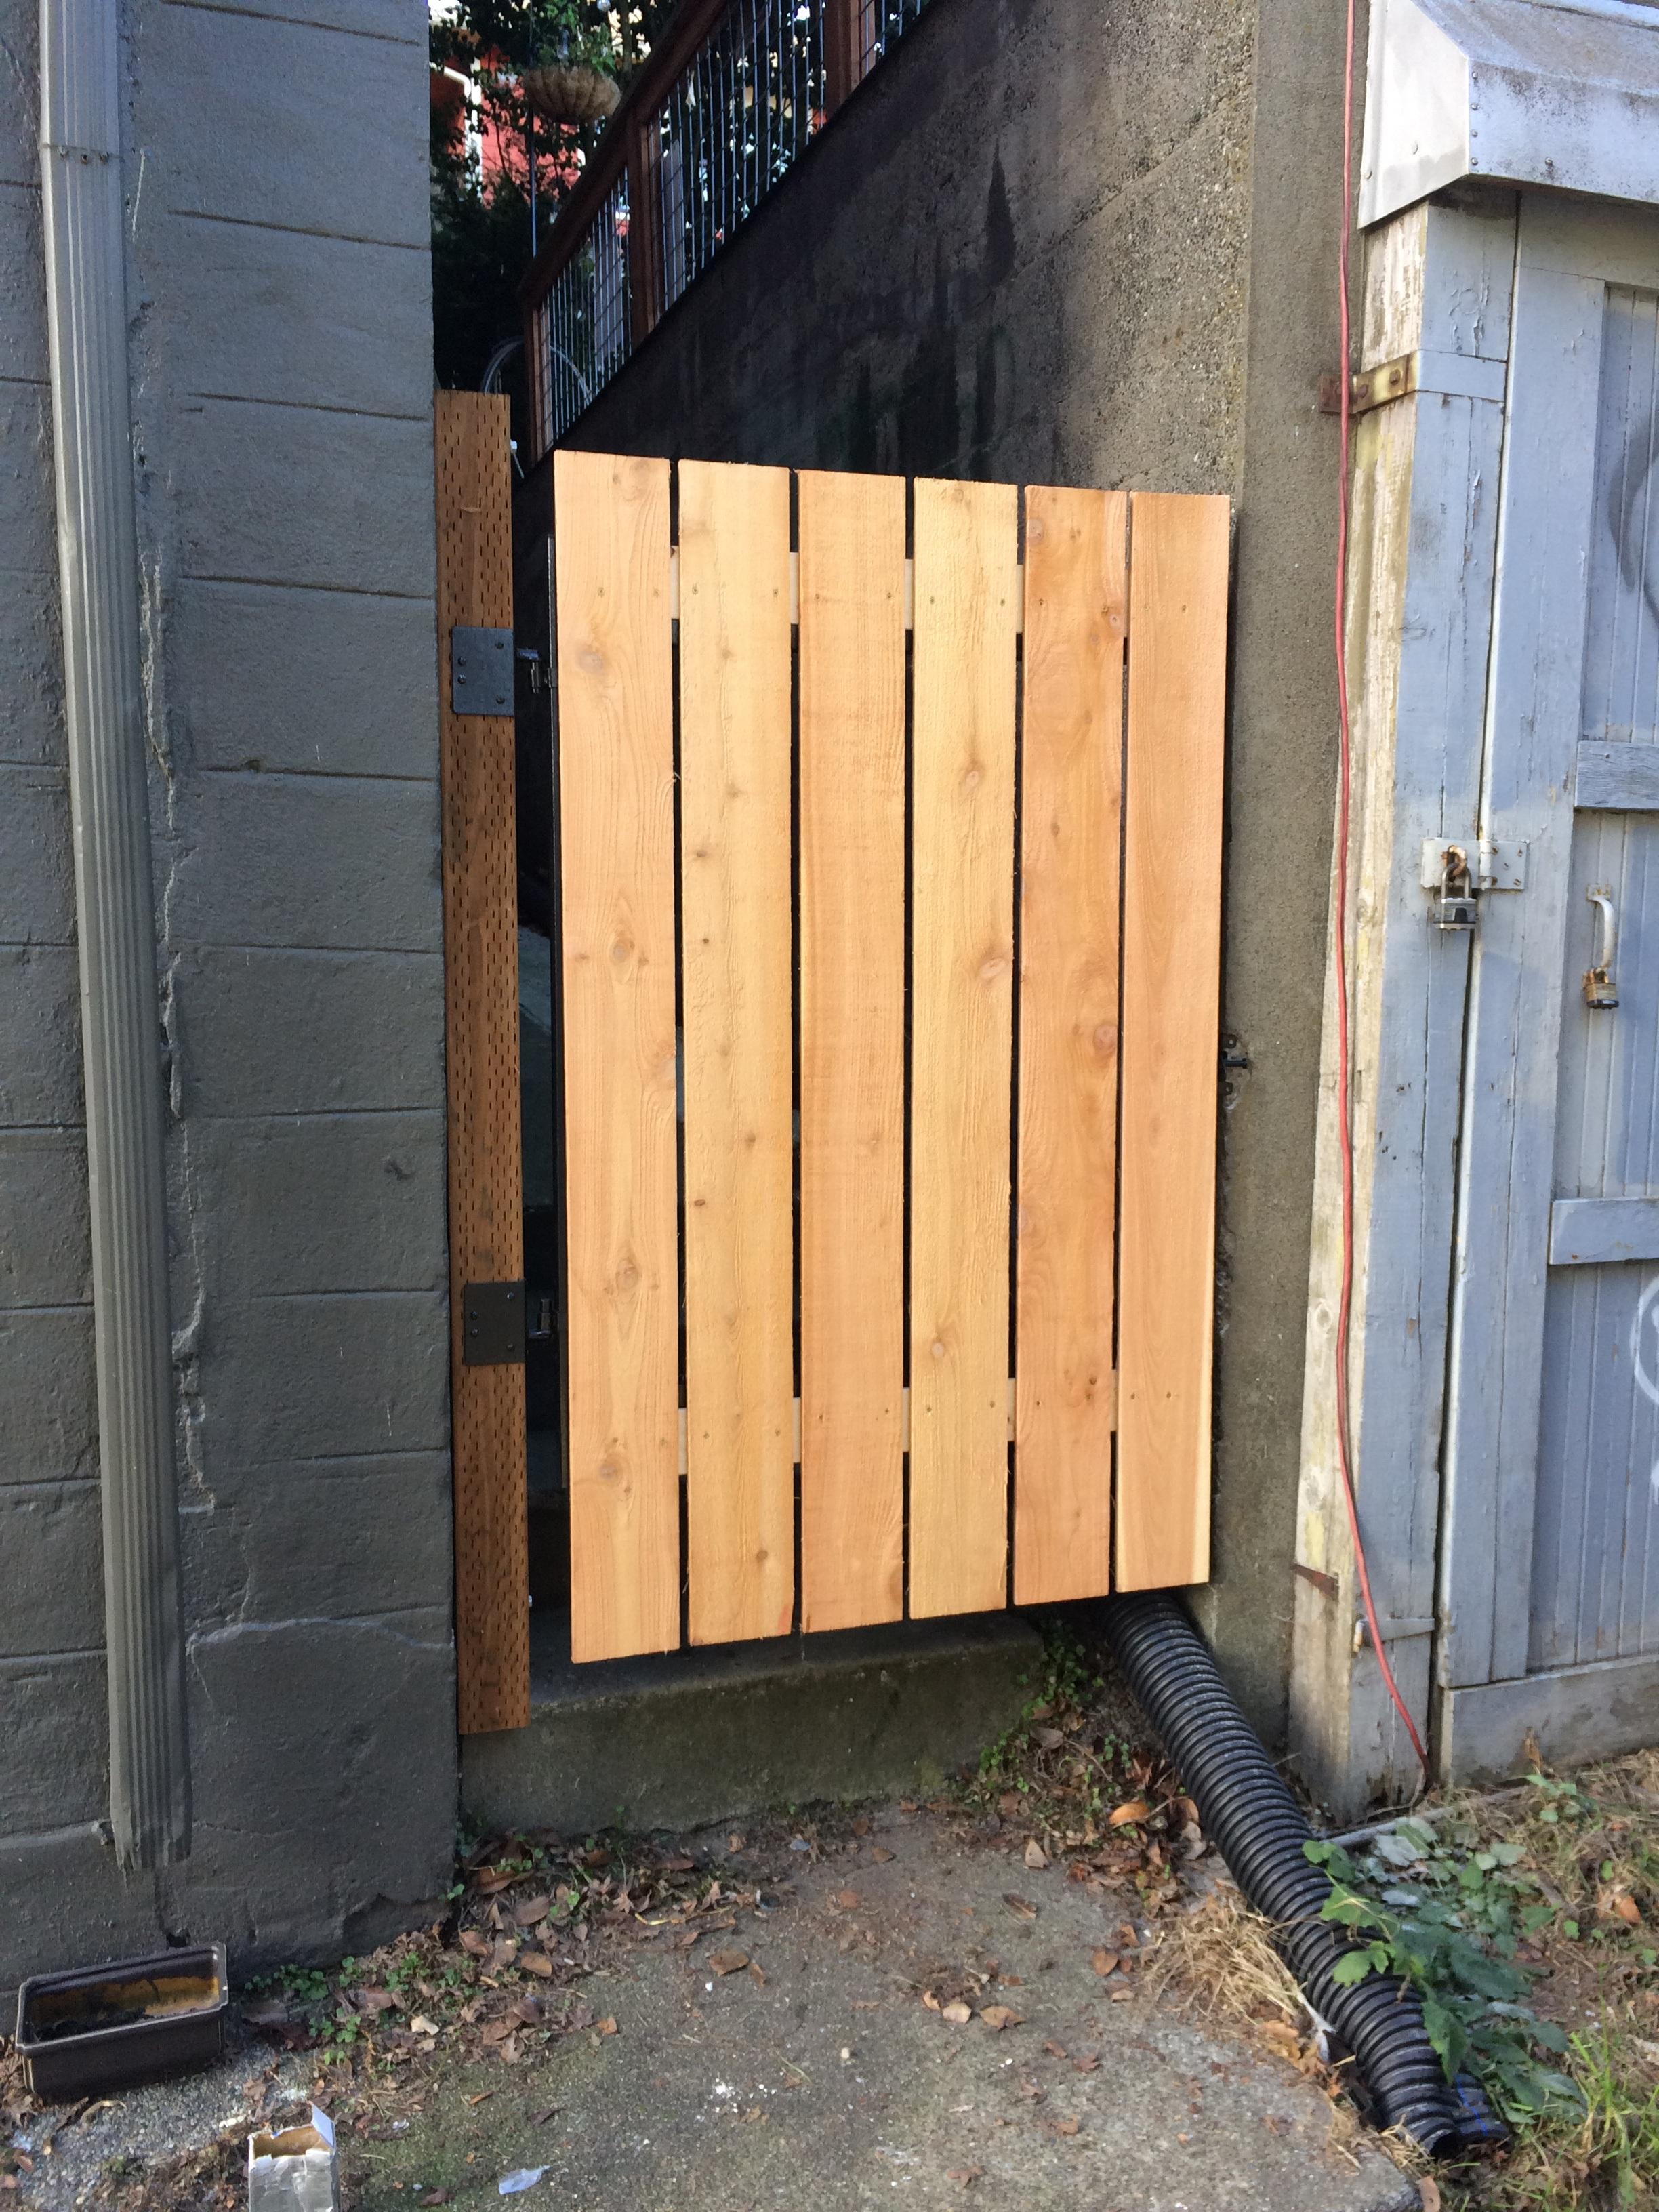 New gate installed in alleyway